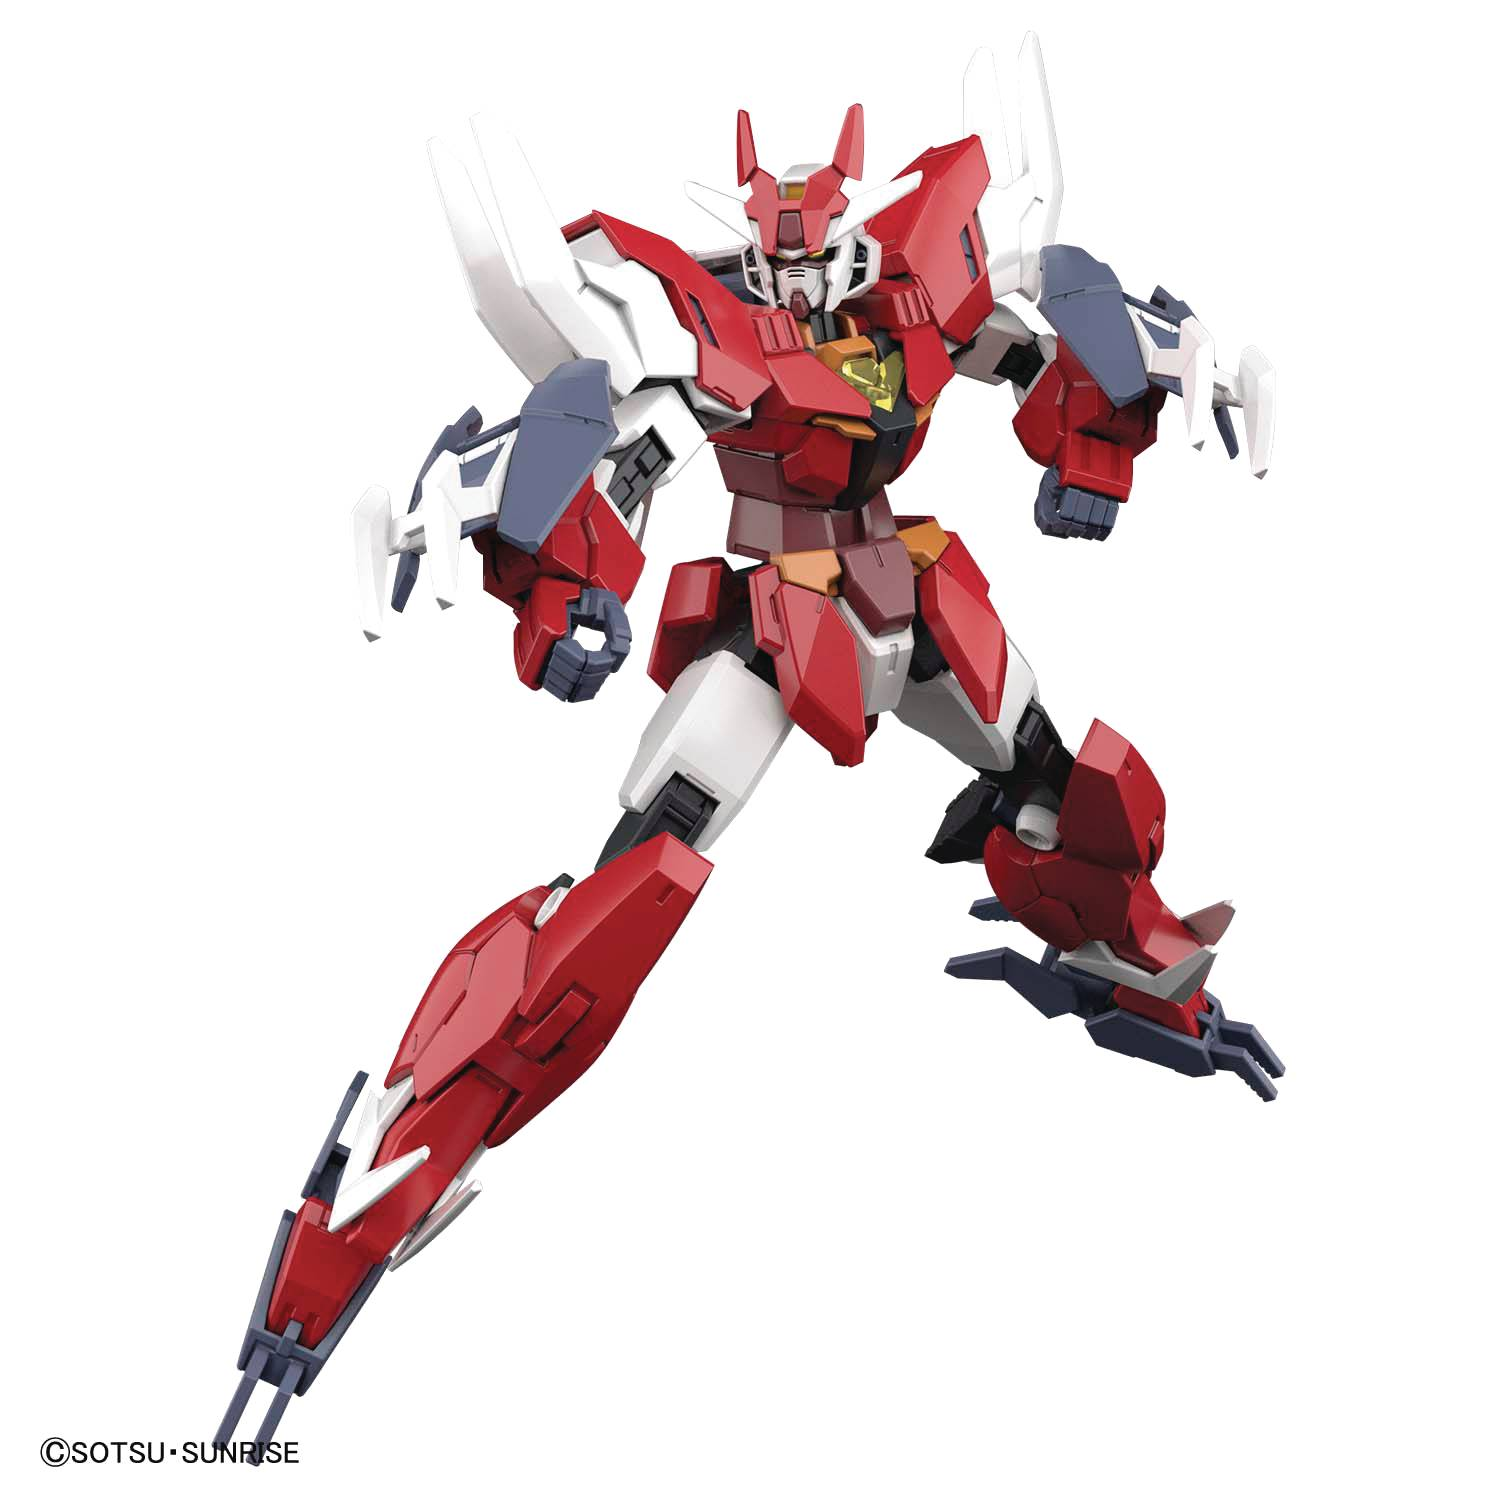 GUNDAM BUILD DIVERS 08 REAL CORE GUNDAM 1/144 HGBD MDL KIT (